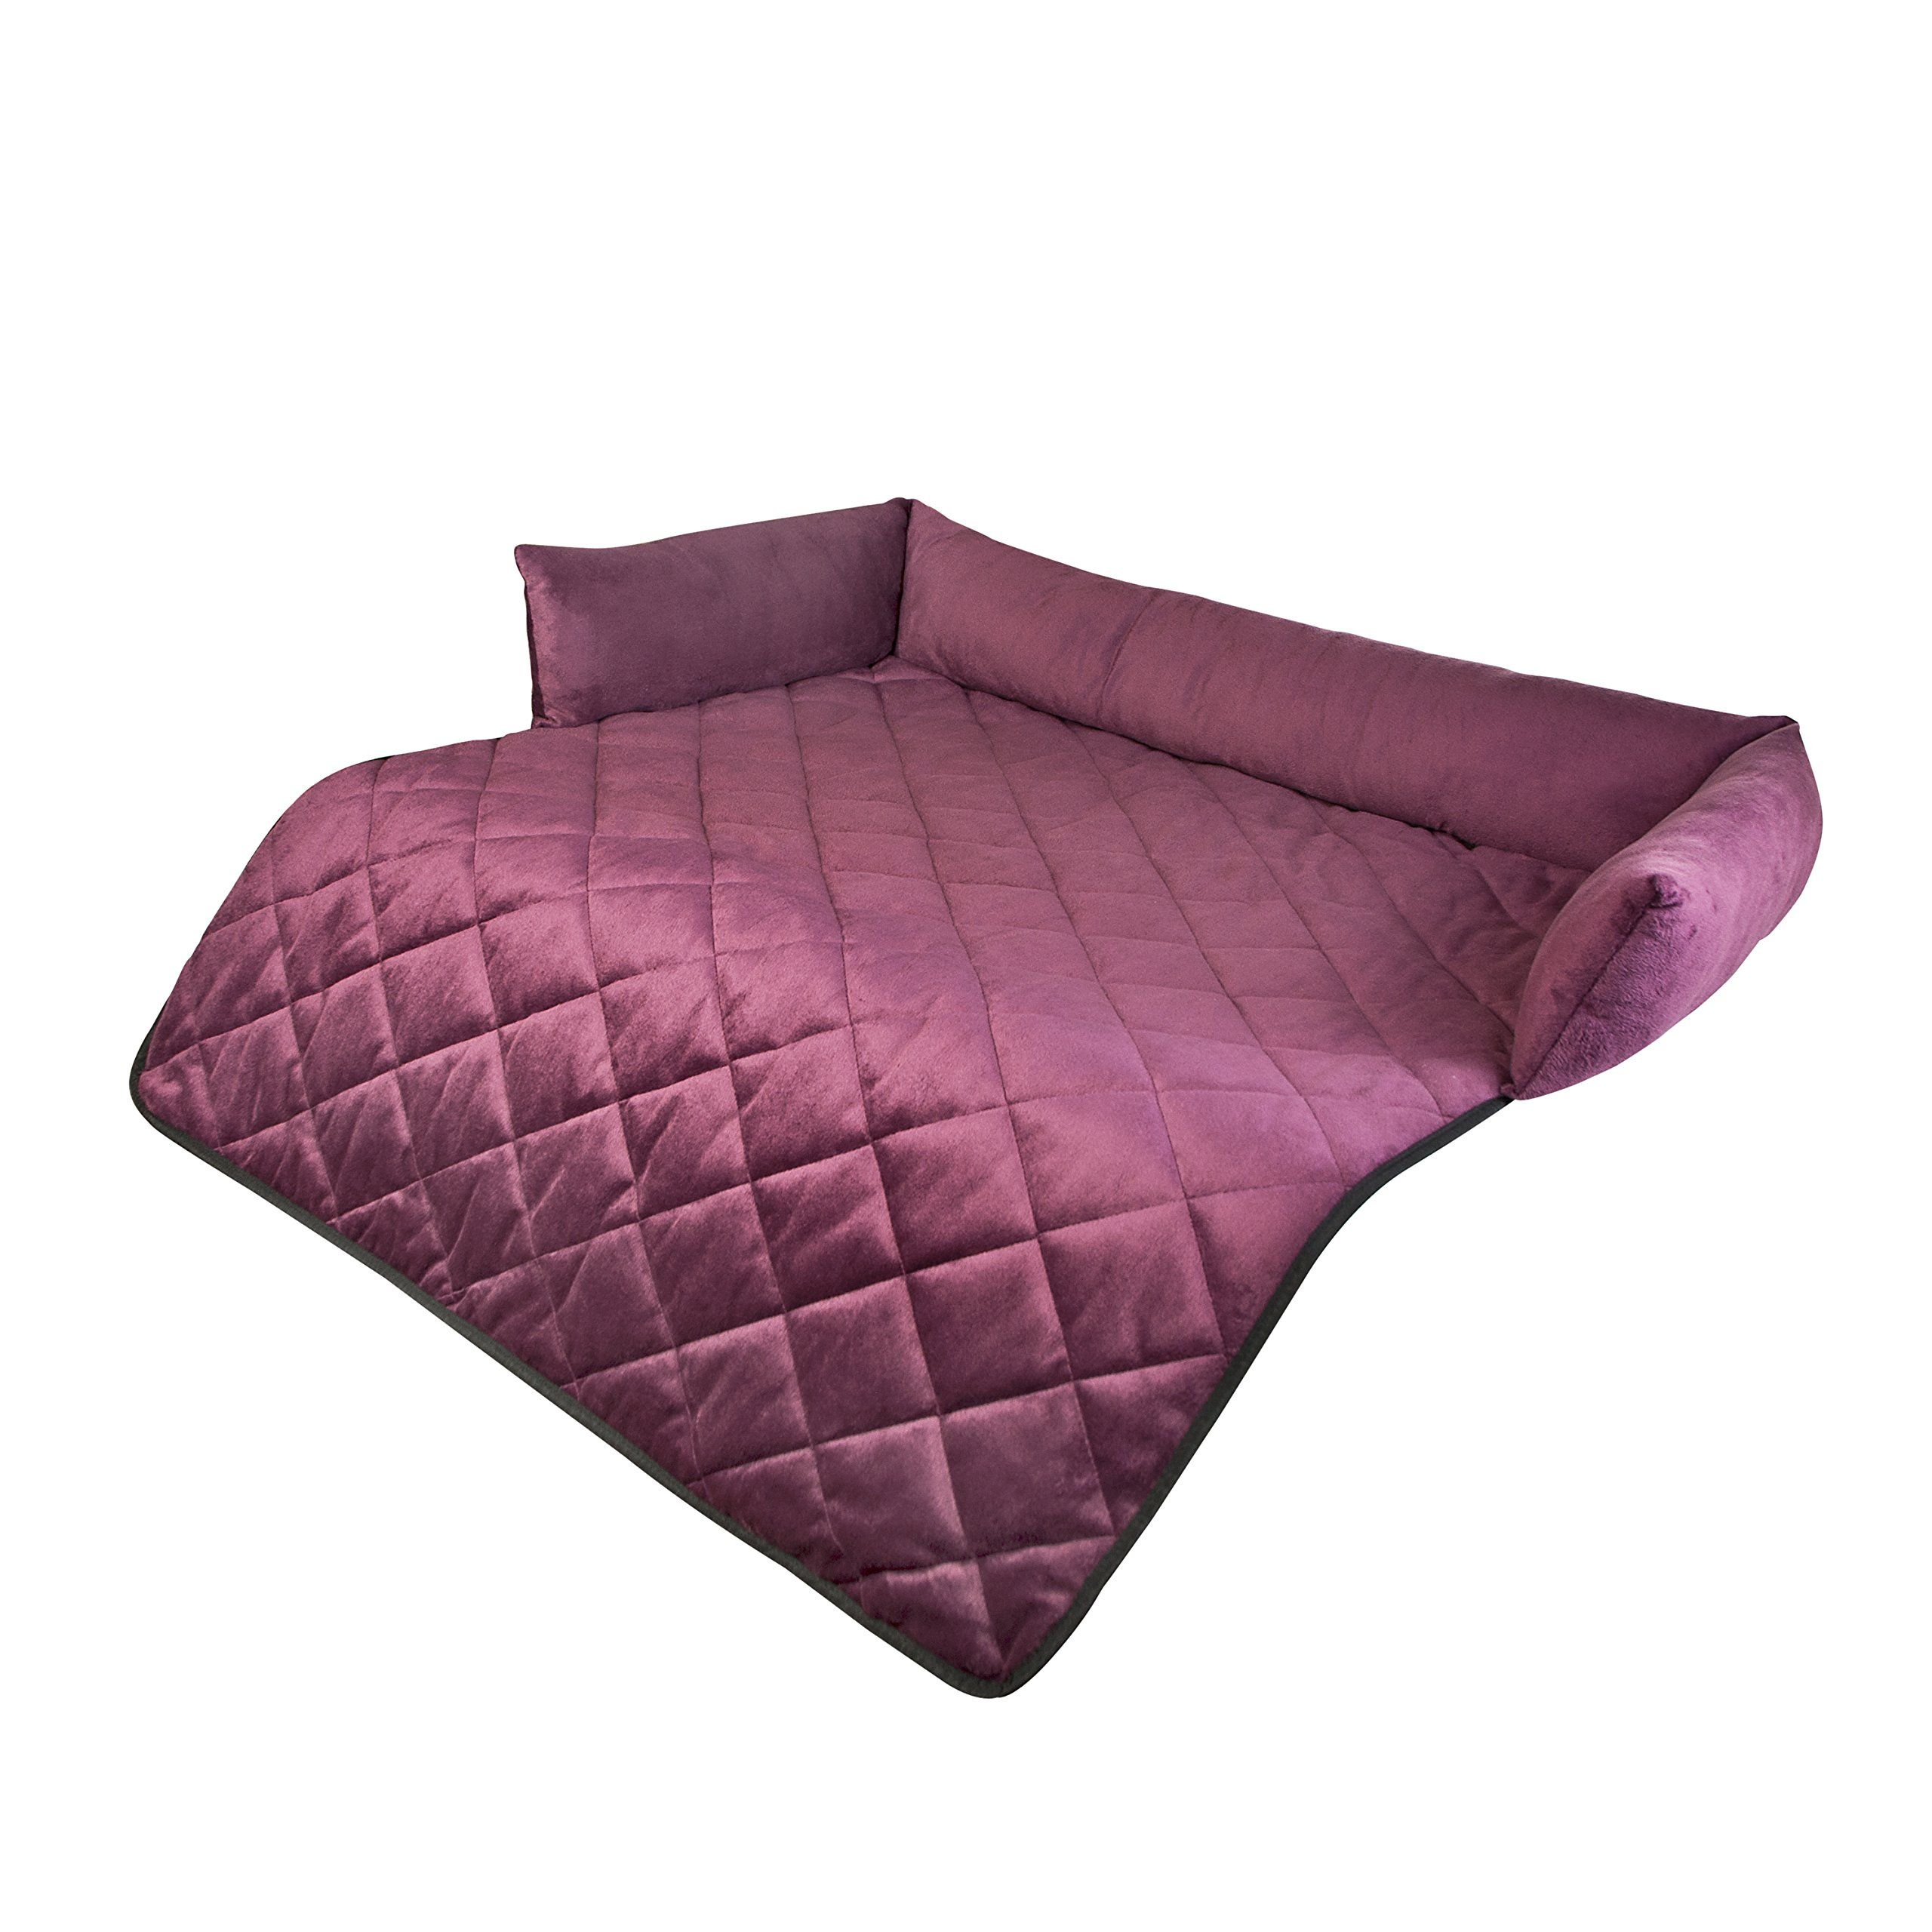 Miraculous Snappies Petcare Cat And Dog Bed Couch Cover Sofas Chairs Inzonedesignstudio Interior Chair Design Inzonedesignstudiocom